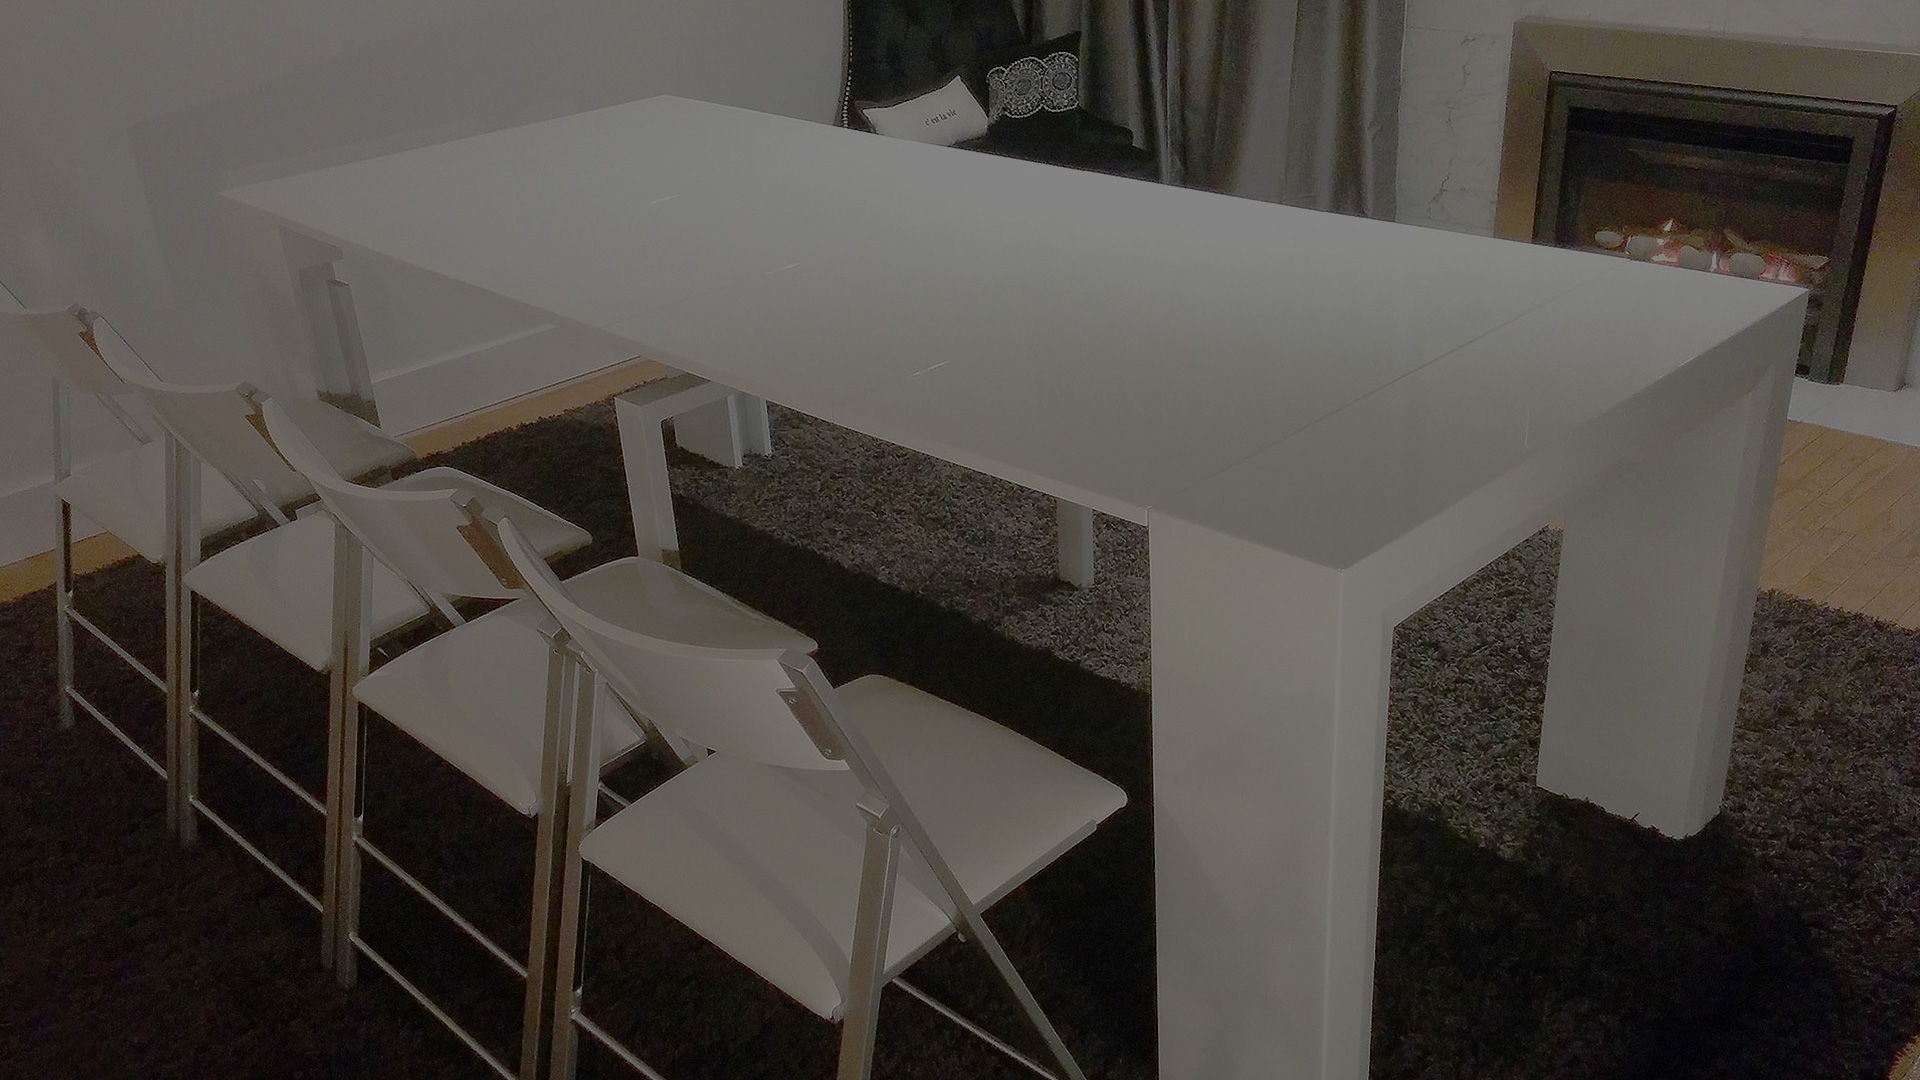 ... Space They Extend, Flip, Fold Or Transform Into Larger Dining Tables  That Seat 4 To 14+ People. All Backed By Expand Furnitureu0027s Customer  Service, ...